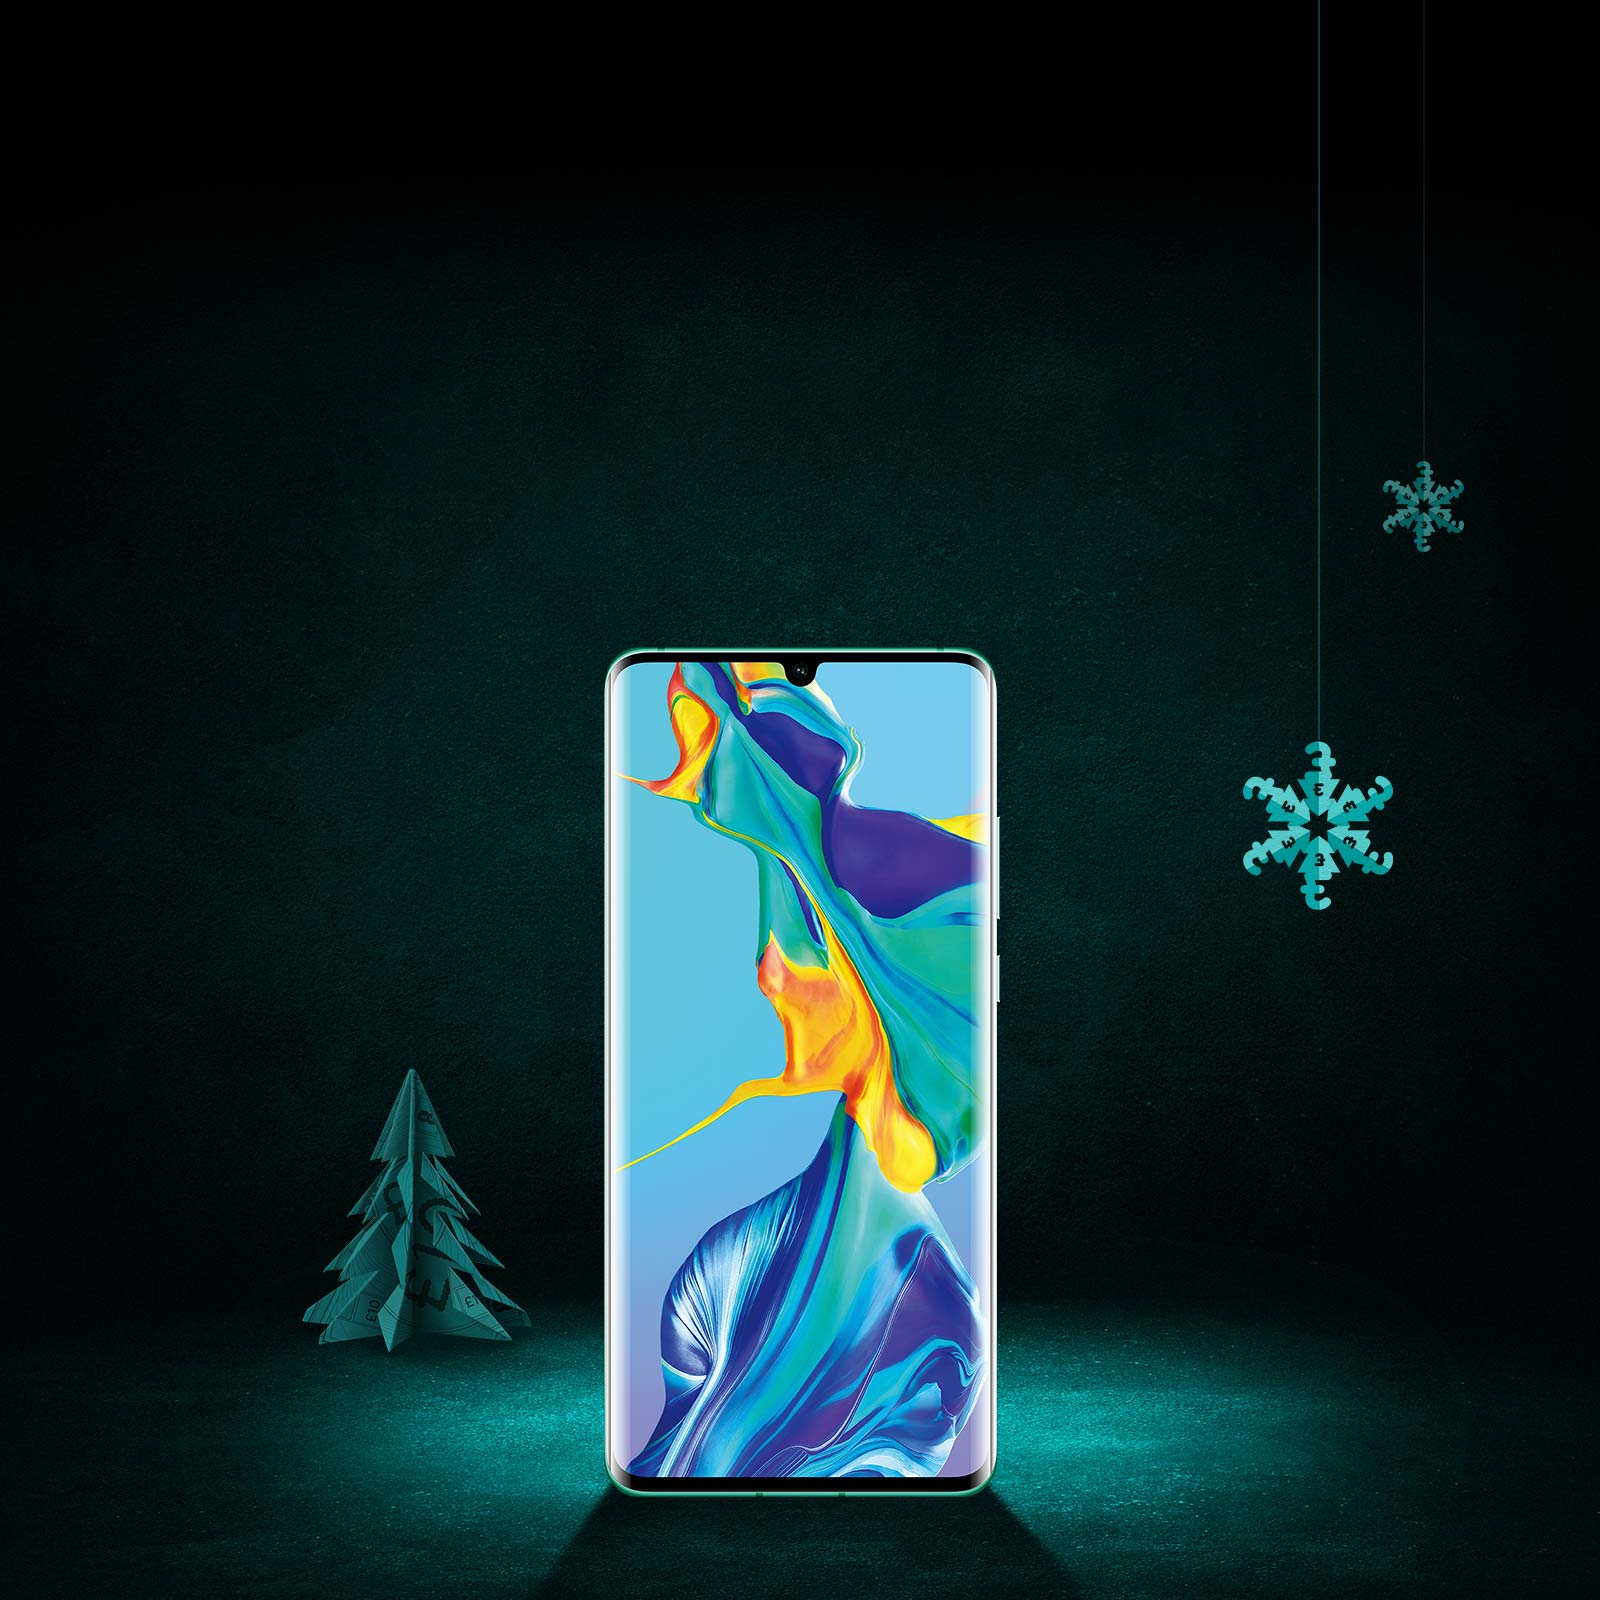 Huawei P30 pro on a black and aqua background